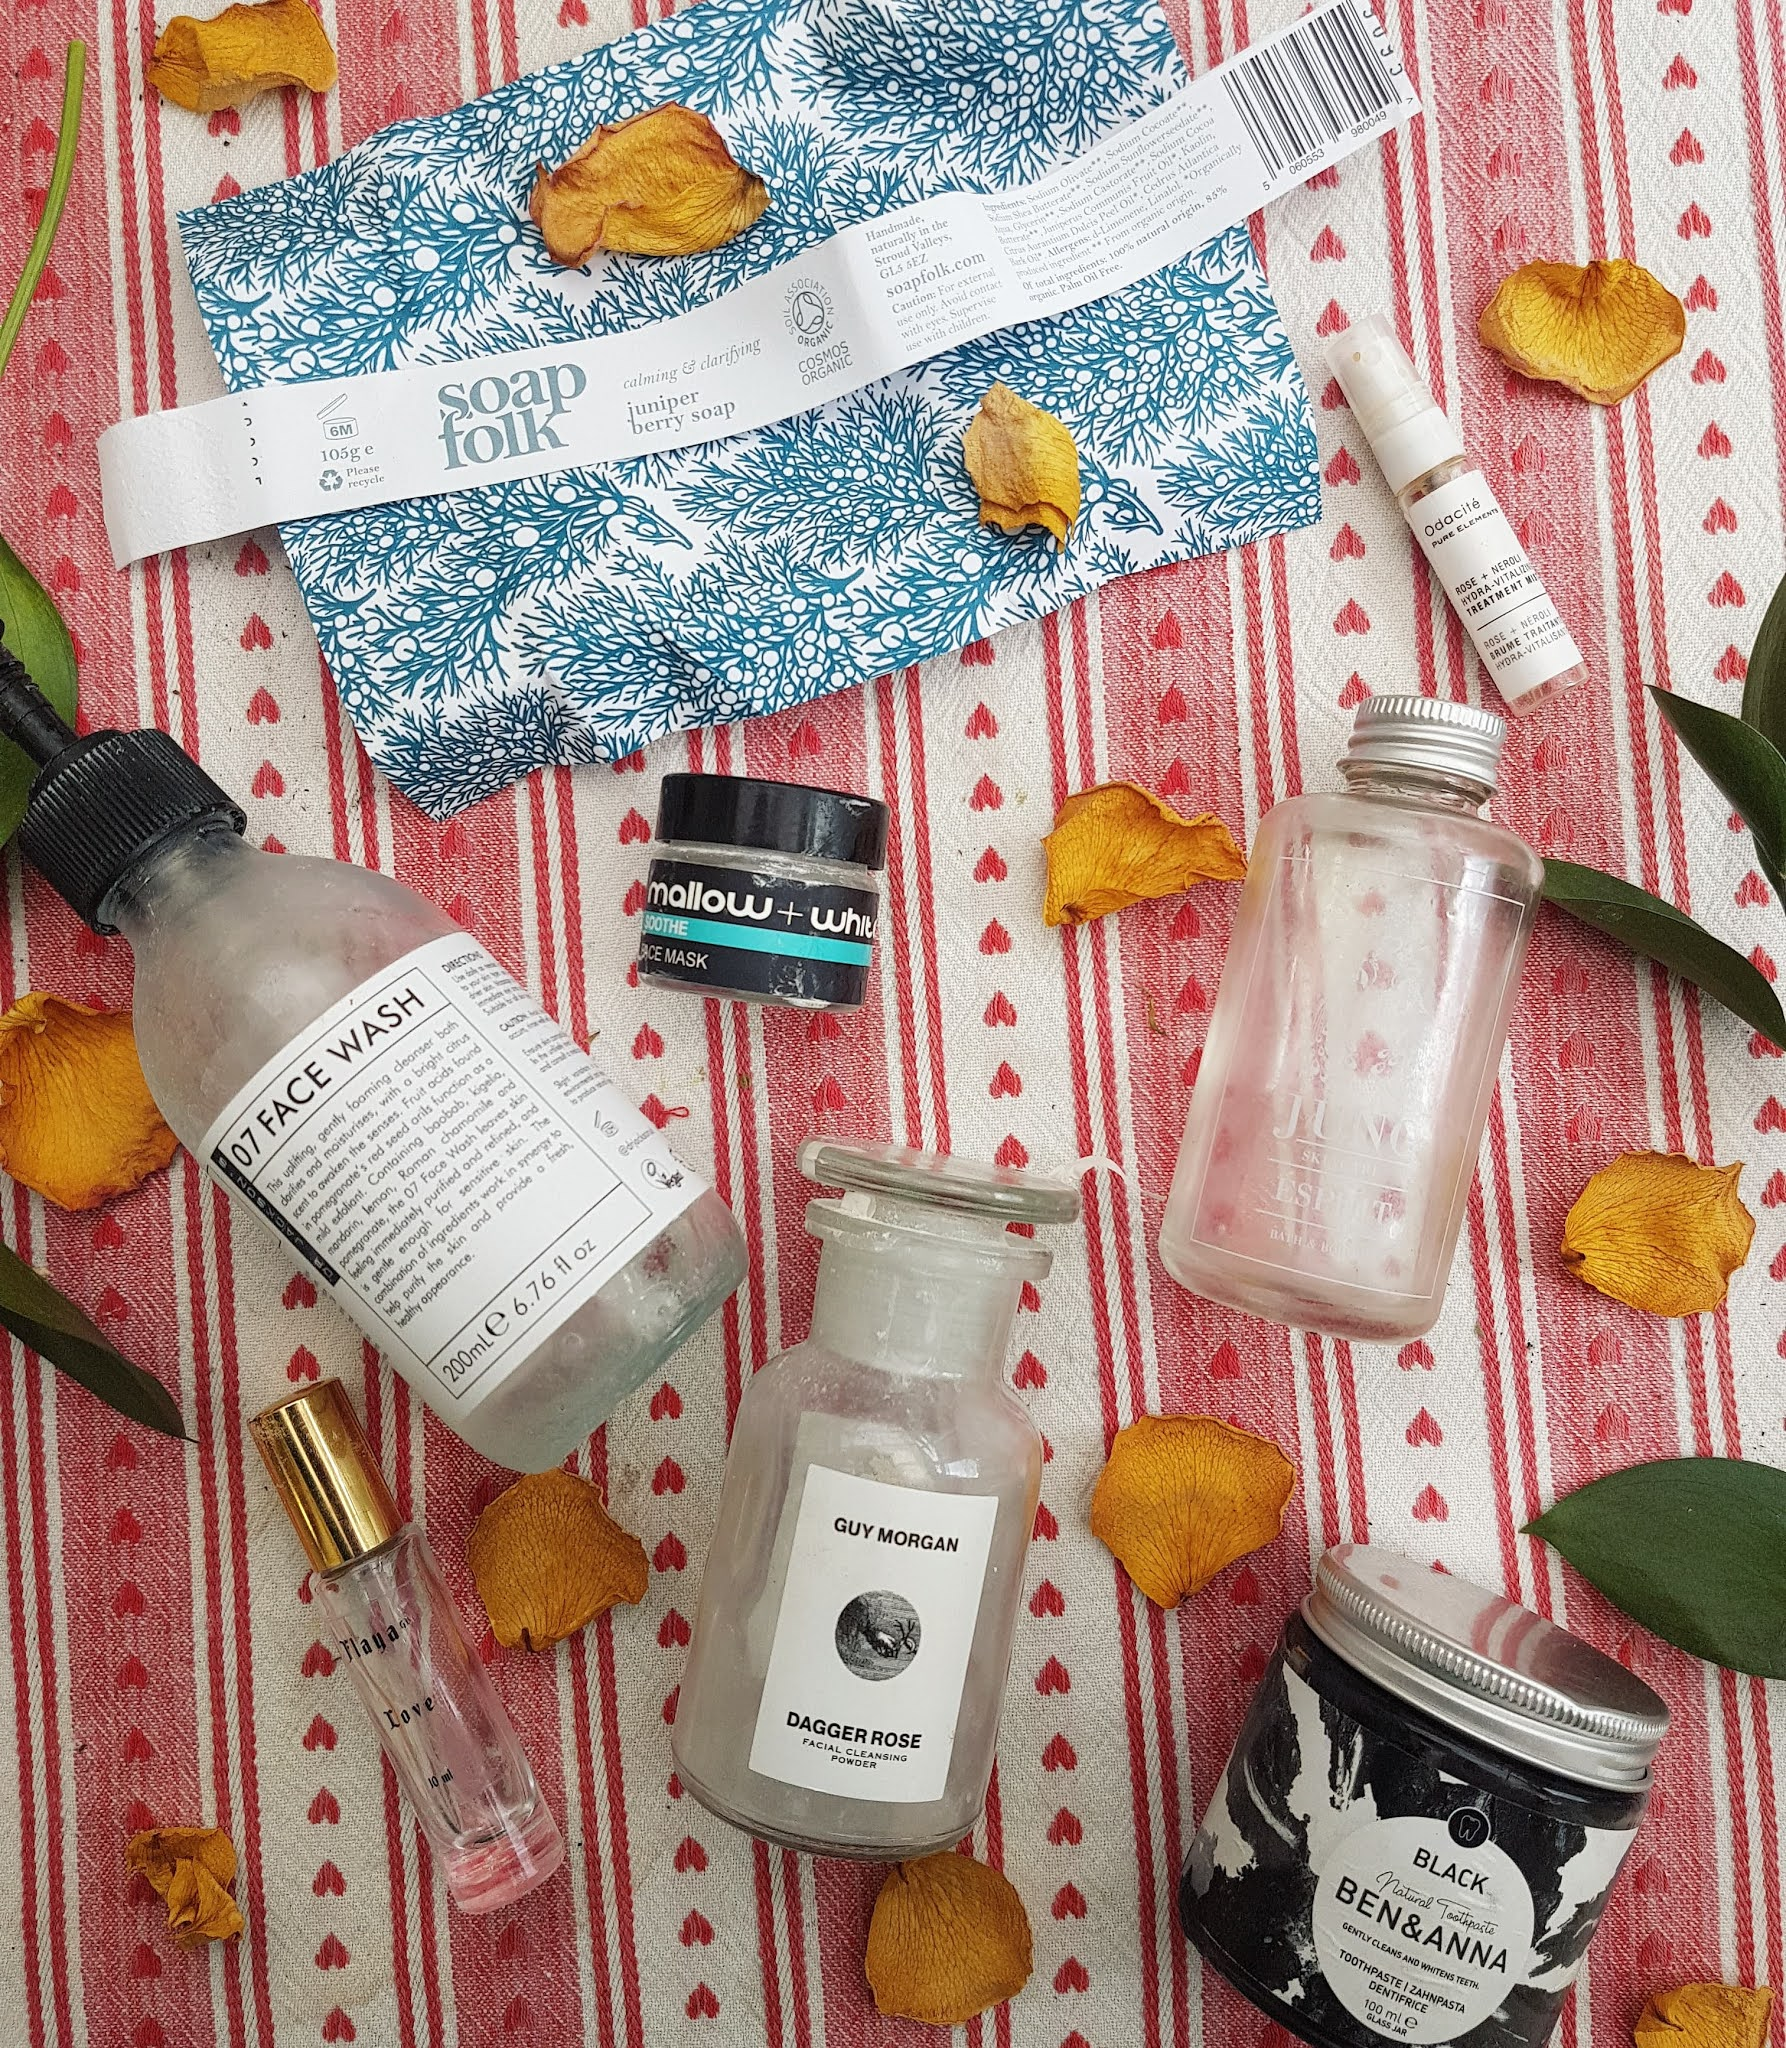 Green Beauty and Wellbeing Empties - End of Summer Roundup